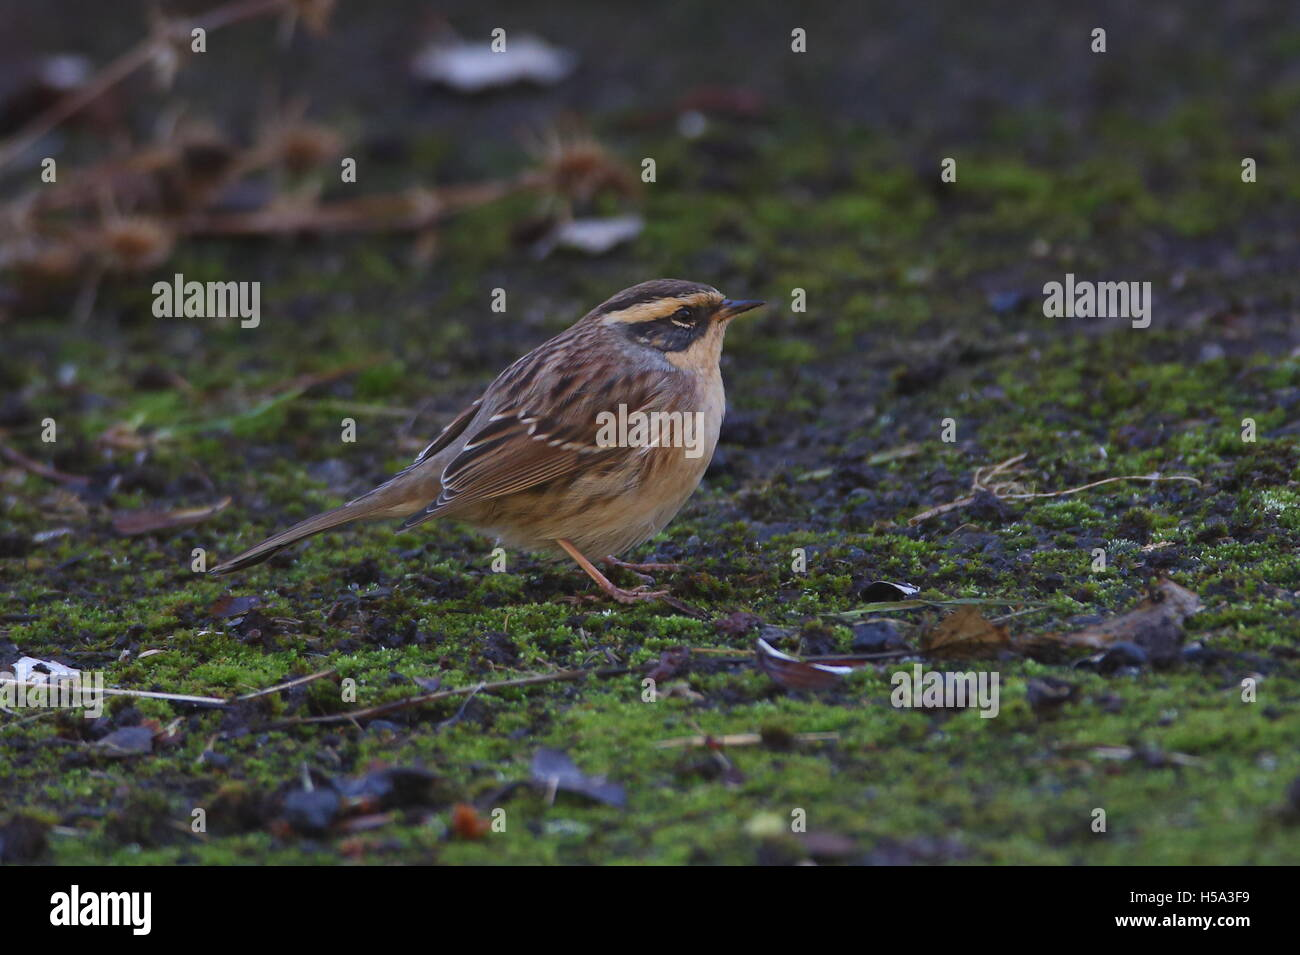 Siberian Accentor - Stock Image